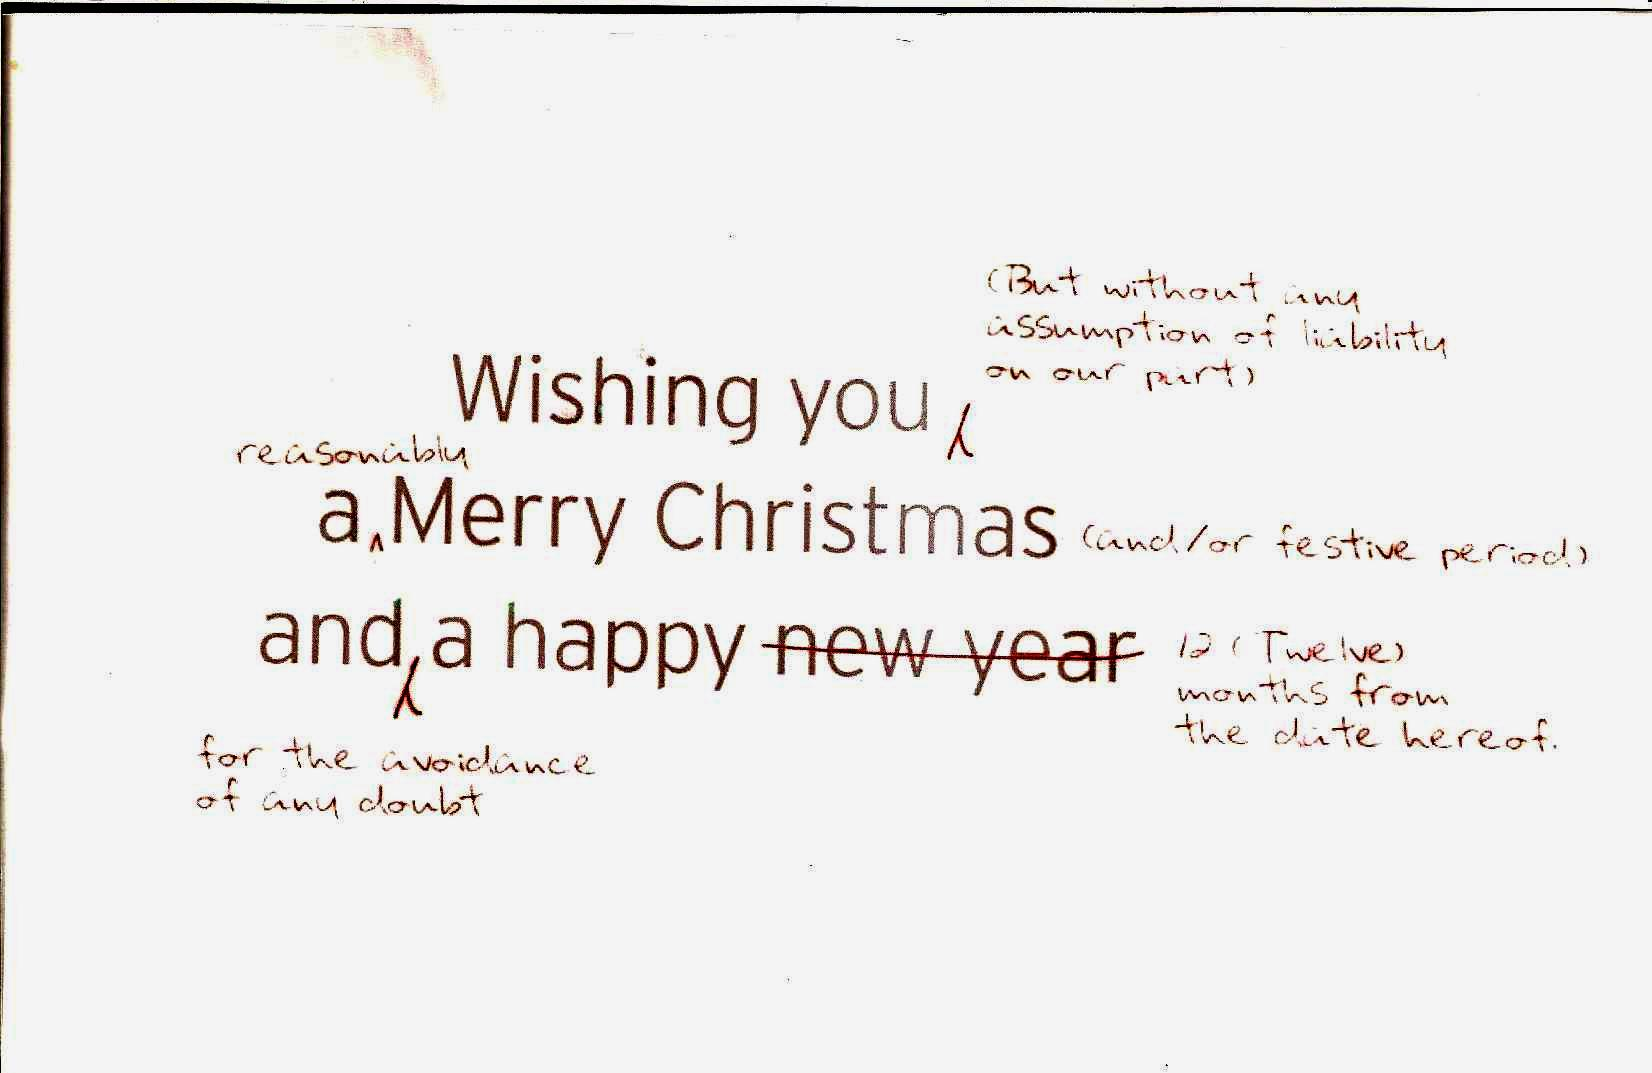 http://www.ronross.info/blog/wp-content/uploads/2012/12/How-a-lawyer-feels-comfortable-sending-seasons-greetings-v2.jpg#.png